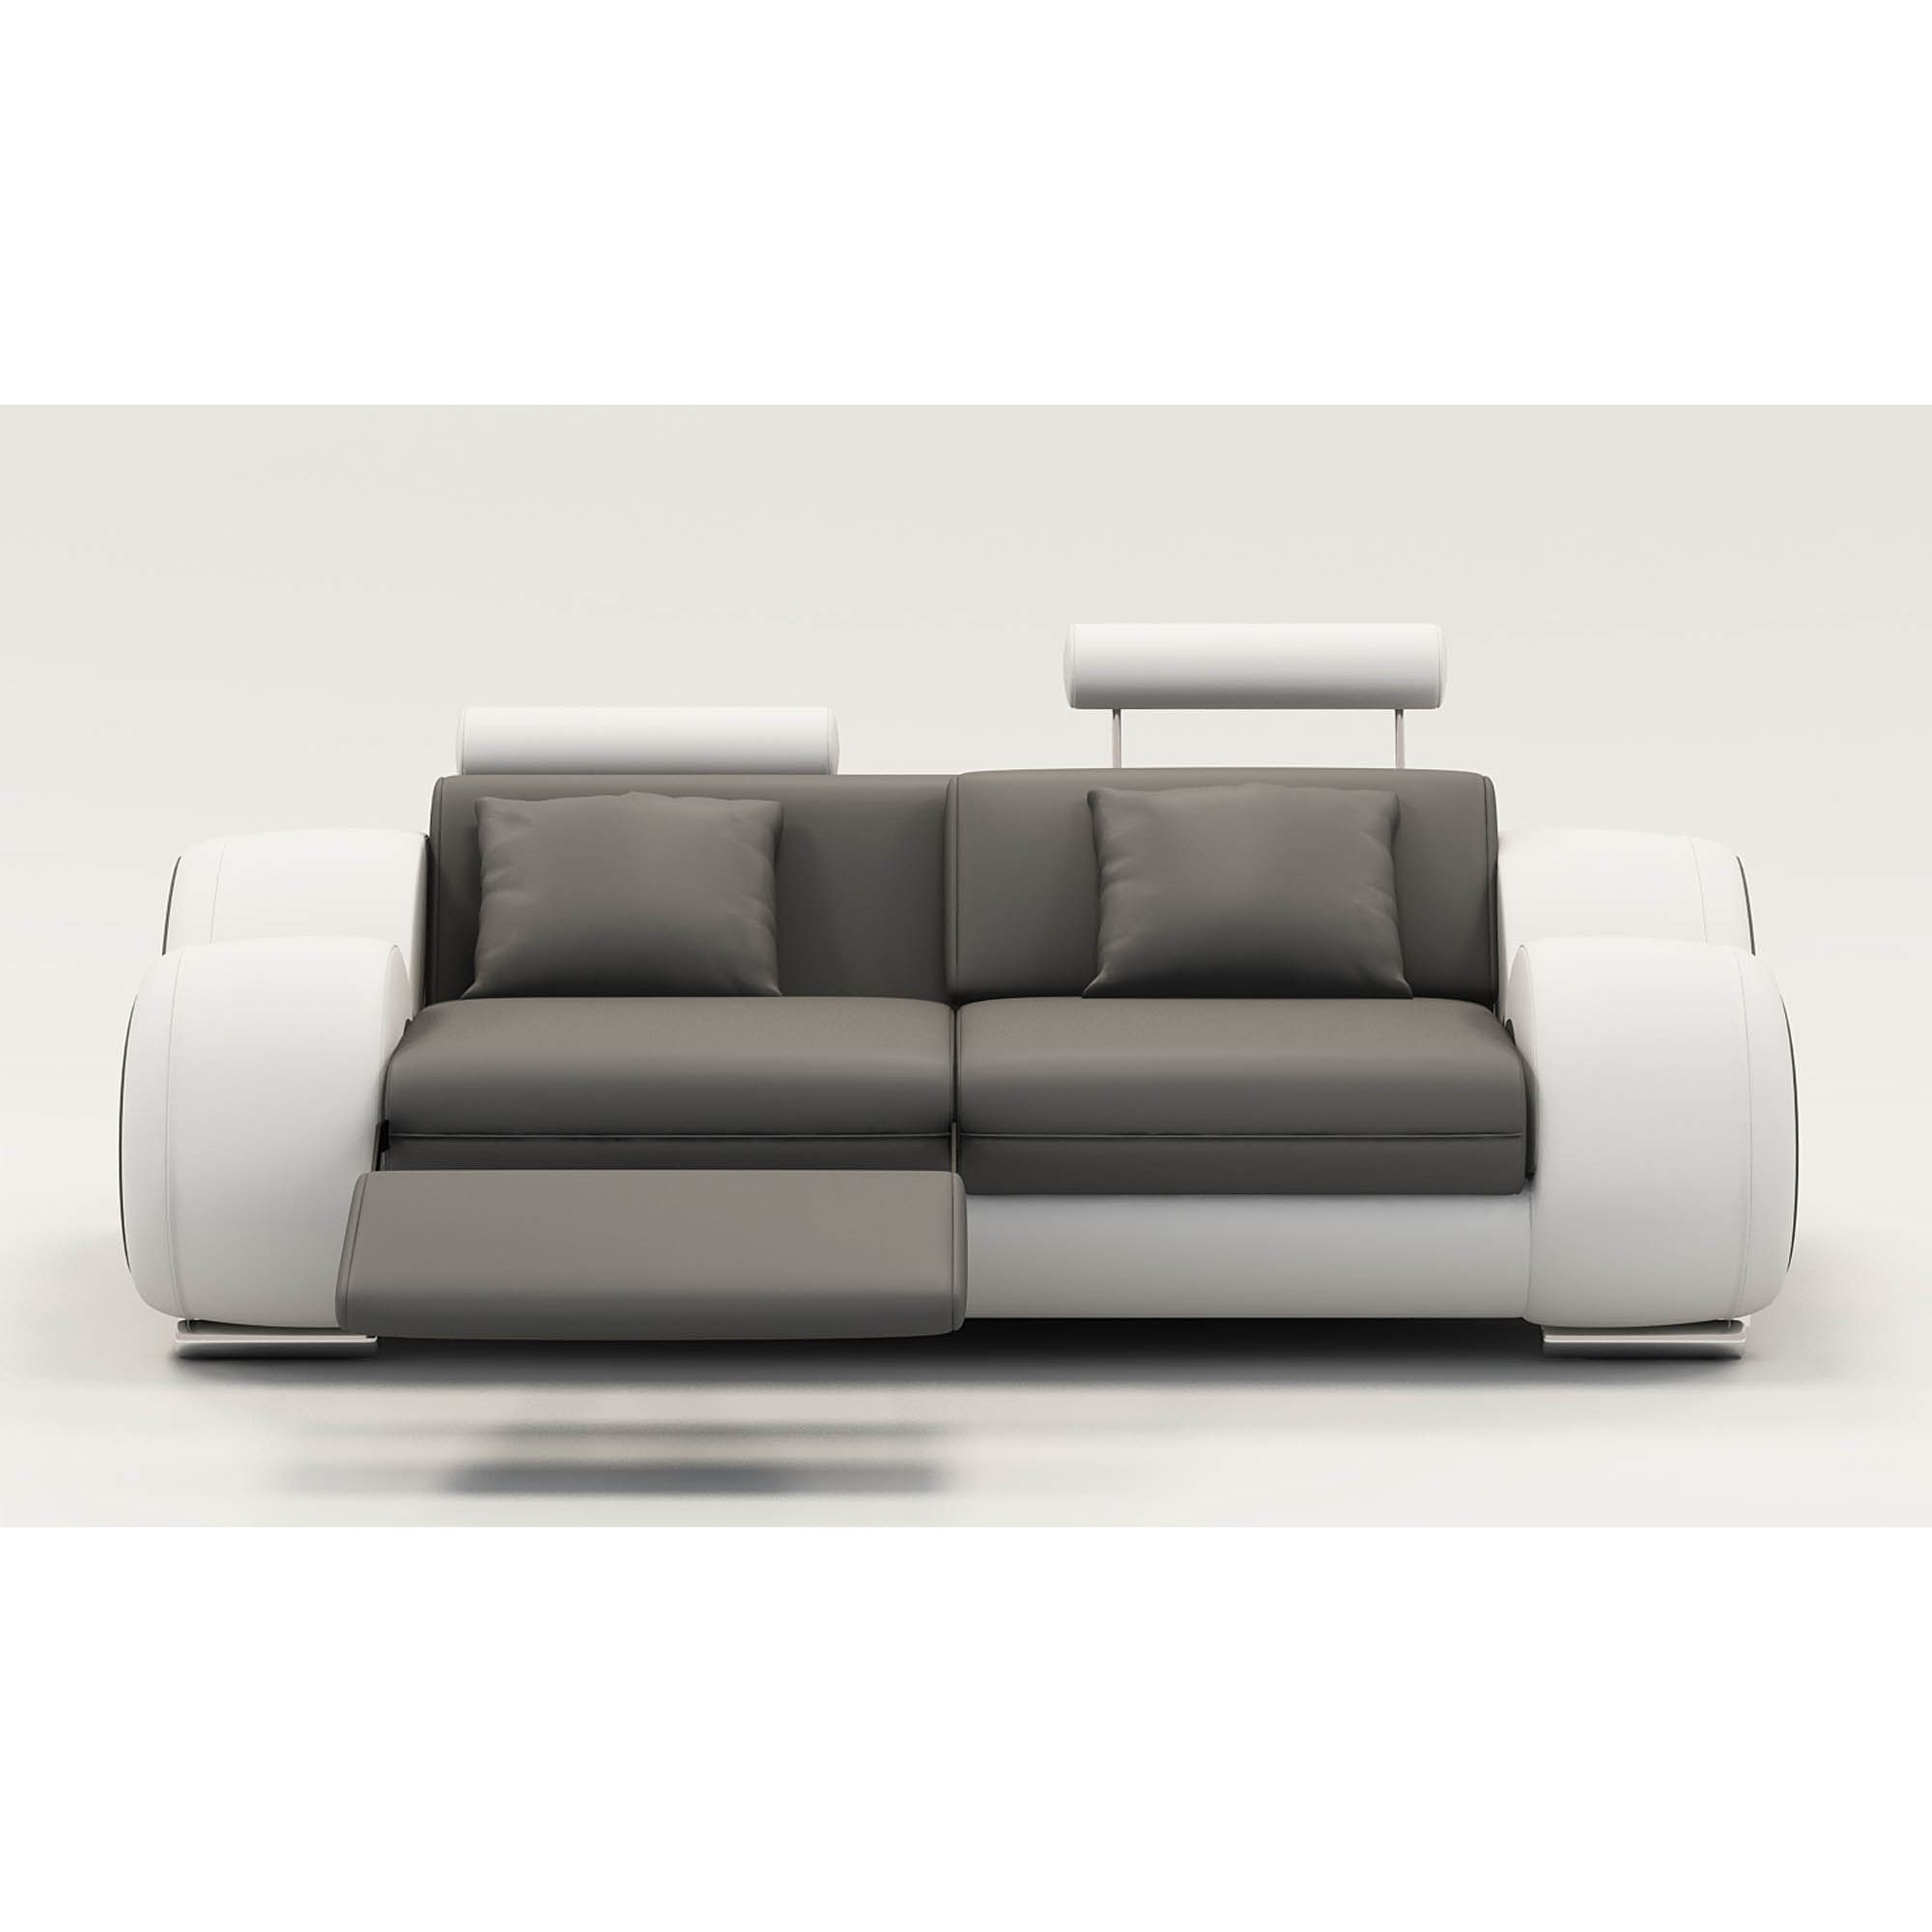 Deco in paris 7 canape 2 places design relax oslo en cuir gris et blanc osl - Canape relax 2 places ...